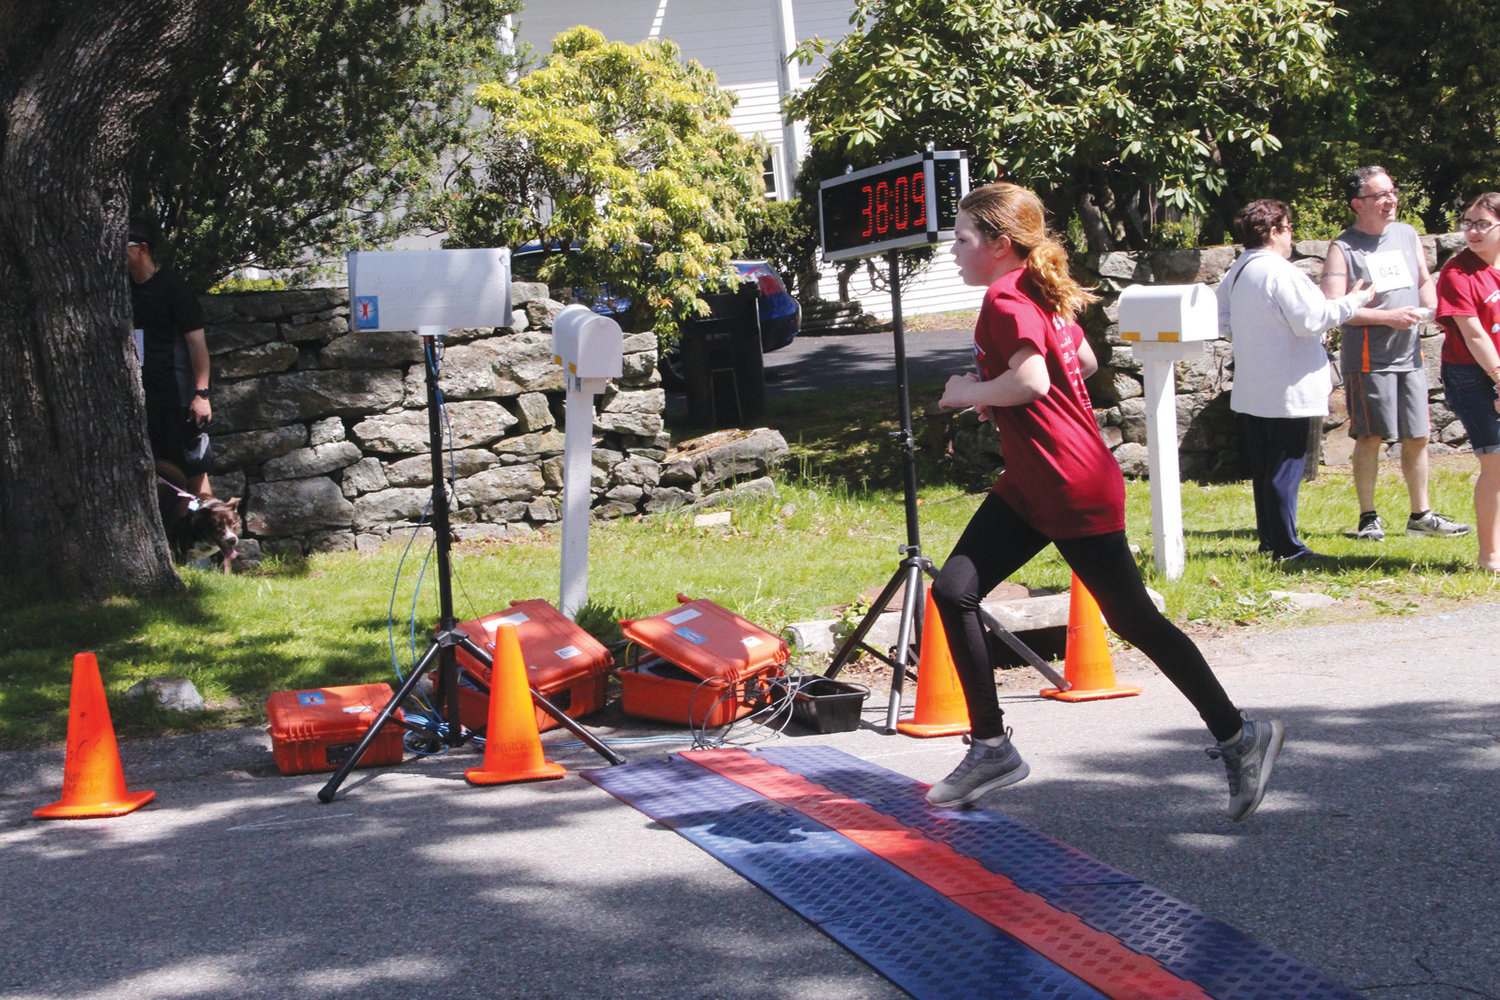 SPRINT TO THE FINISH: Madeline Faucher puts in a final effort as she crosses the finish line.